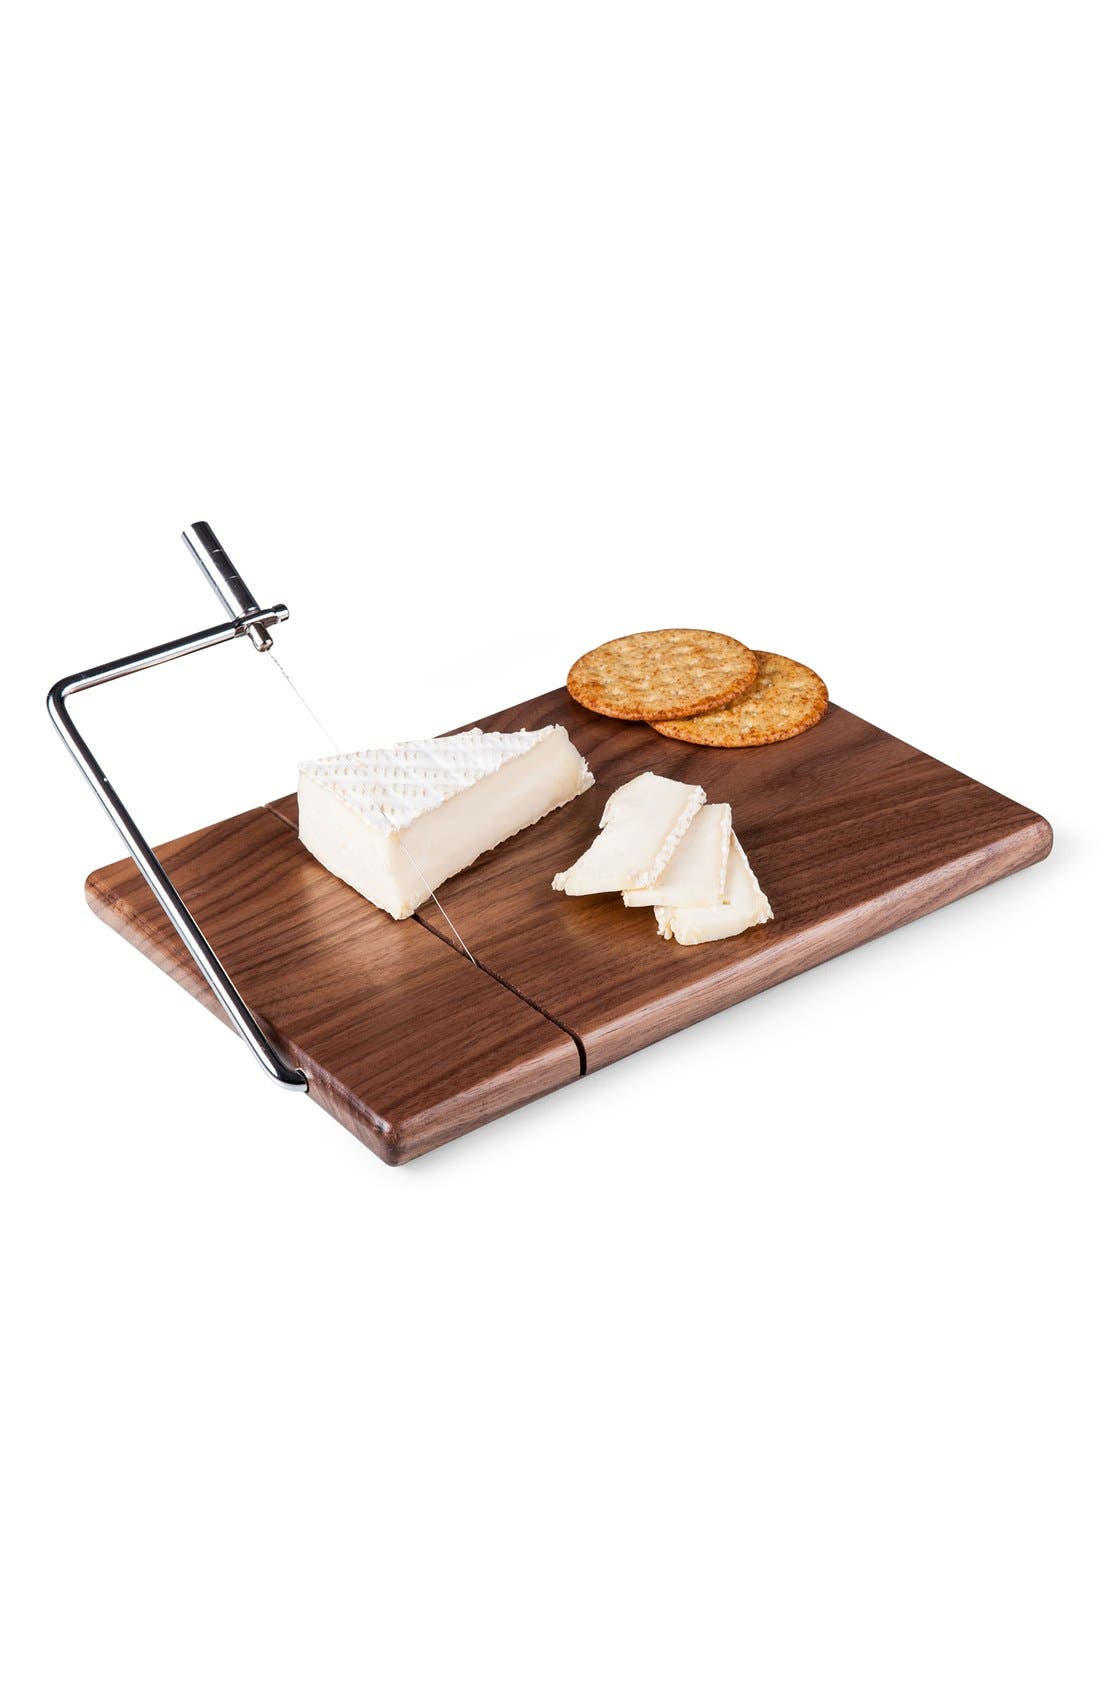 'Meridian' Black Walnut Cutting Board with Slicer,                             Main thumbnail 1, color,                             Black